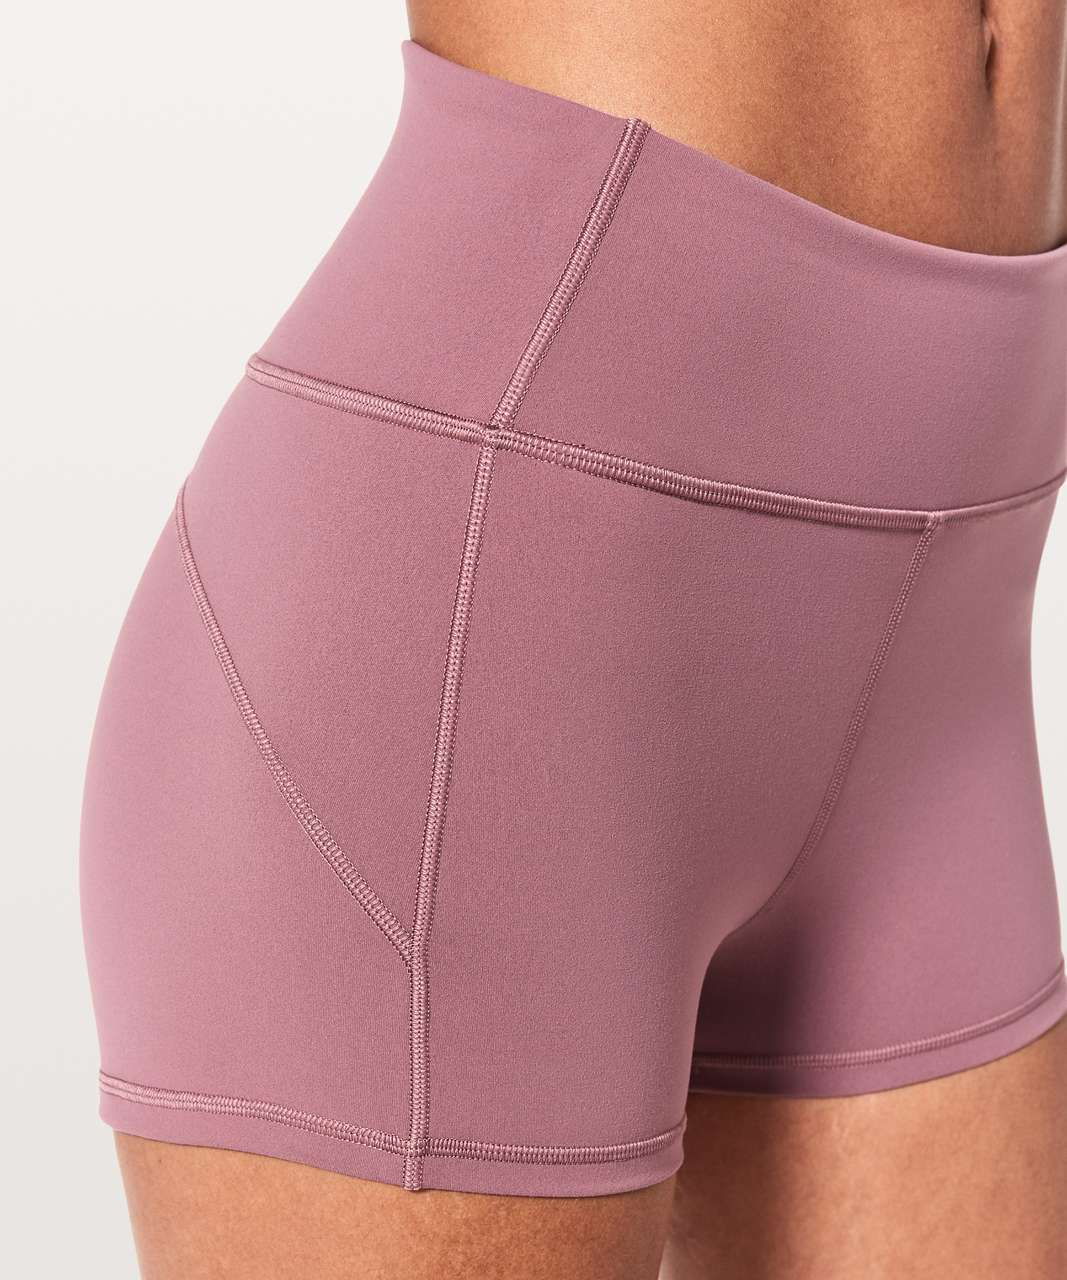 "Lululemon In Movement Short *Everlux 2.5"" - Figue"